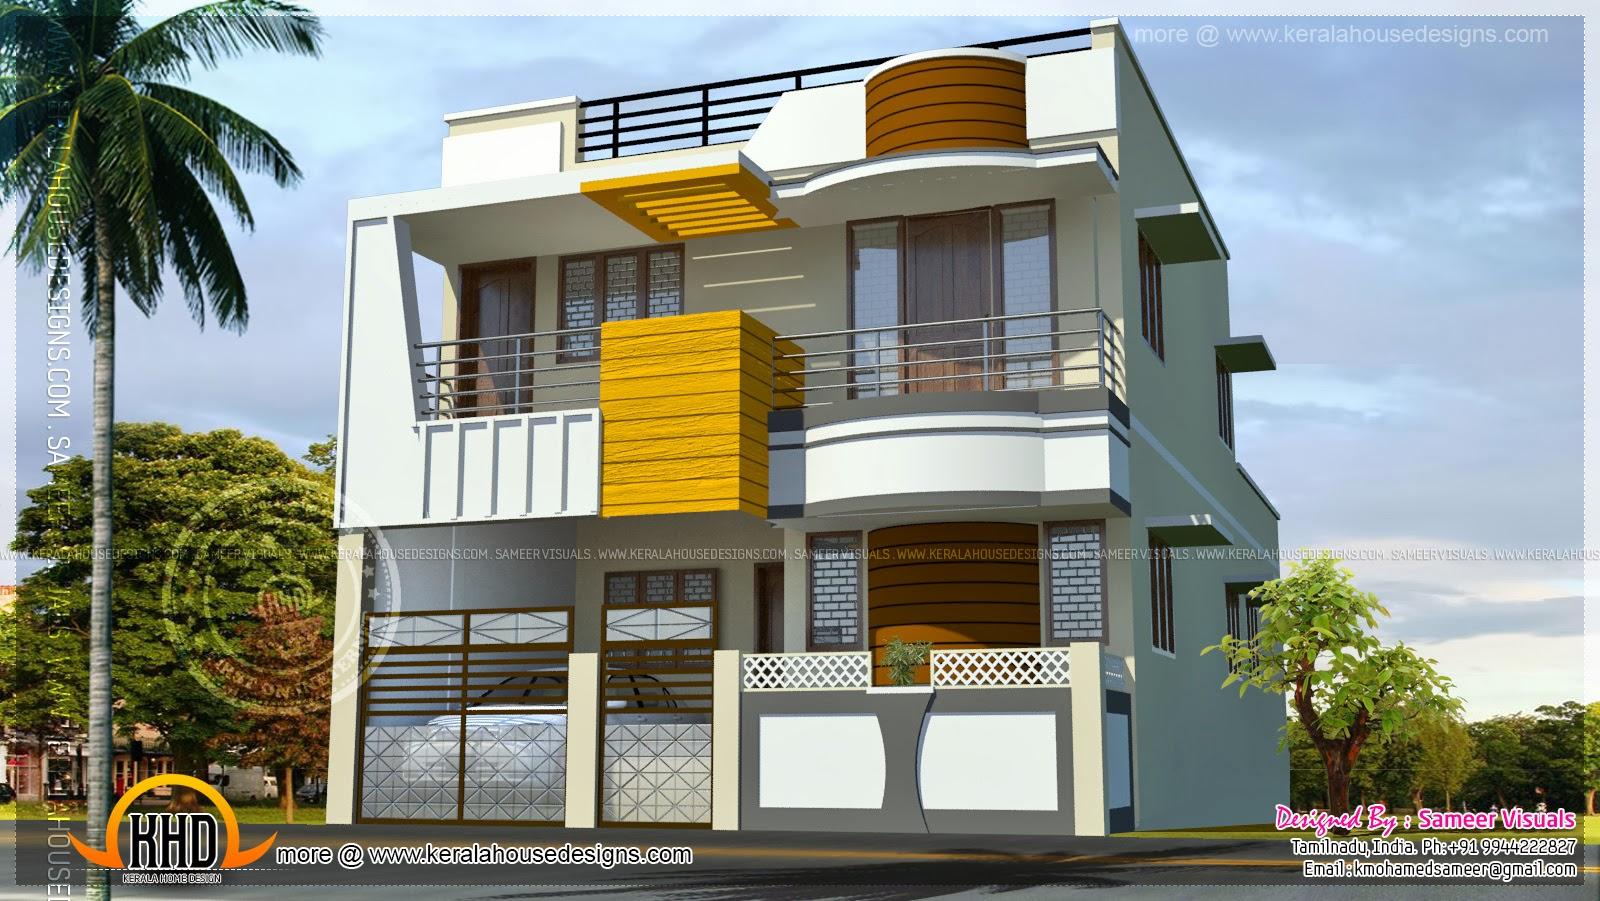 Double storied modern south indian home kerala home for Small indian house plans modern